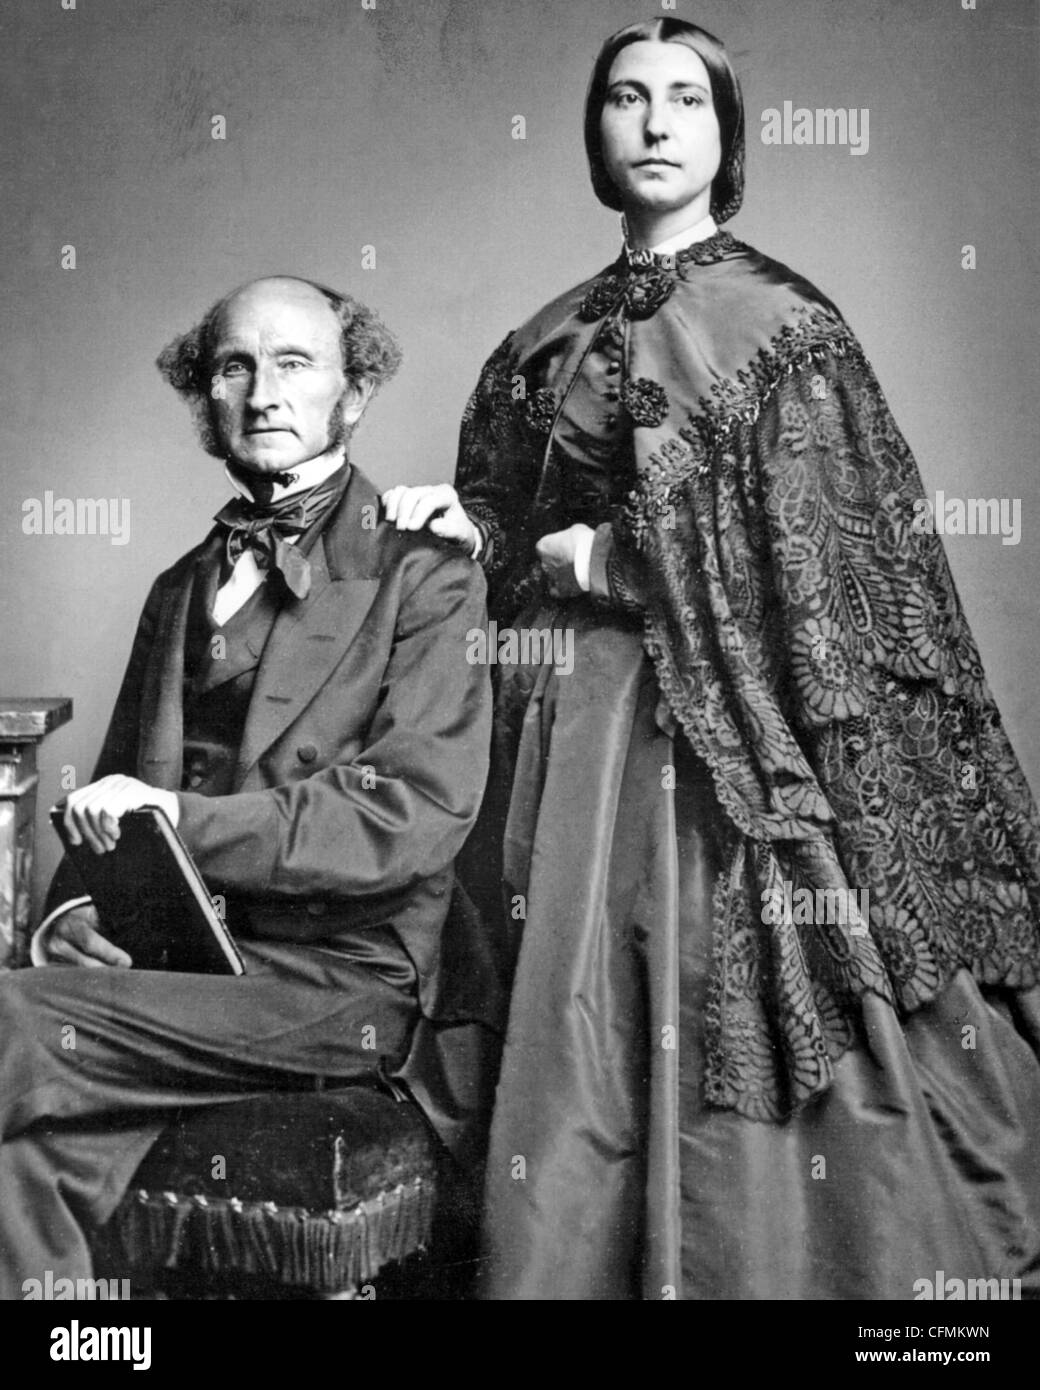 john stuart mill and womens movement essay John stuart mill and women's movement john stuart mill was born in london in 1806 he became renowned as an economist, a writer, a philosopher and senior personnel in the east india company (eic).